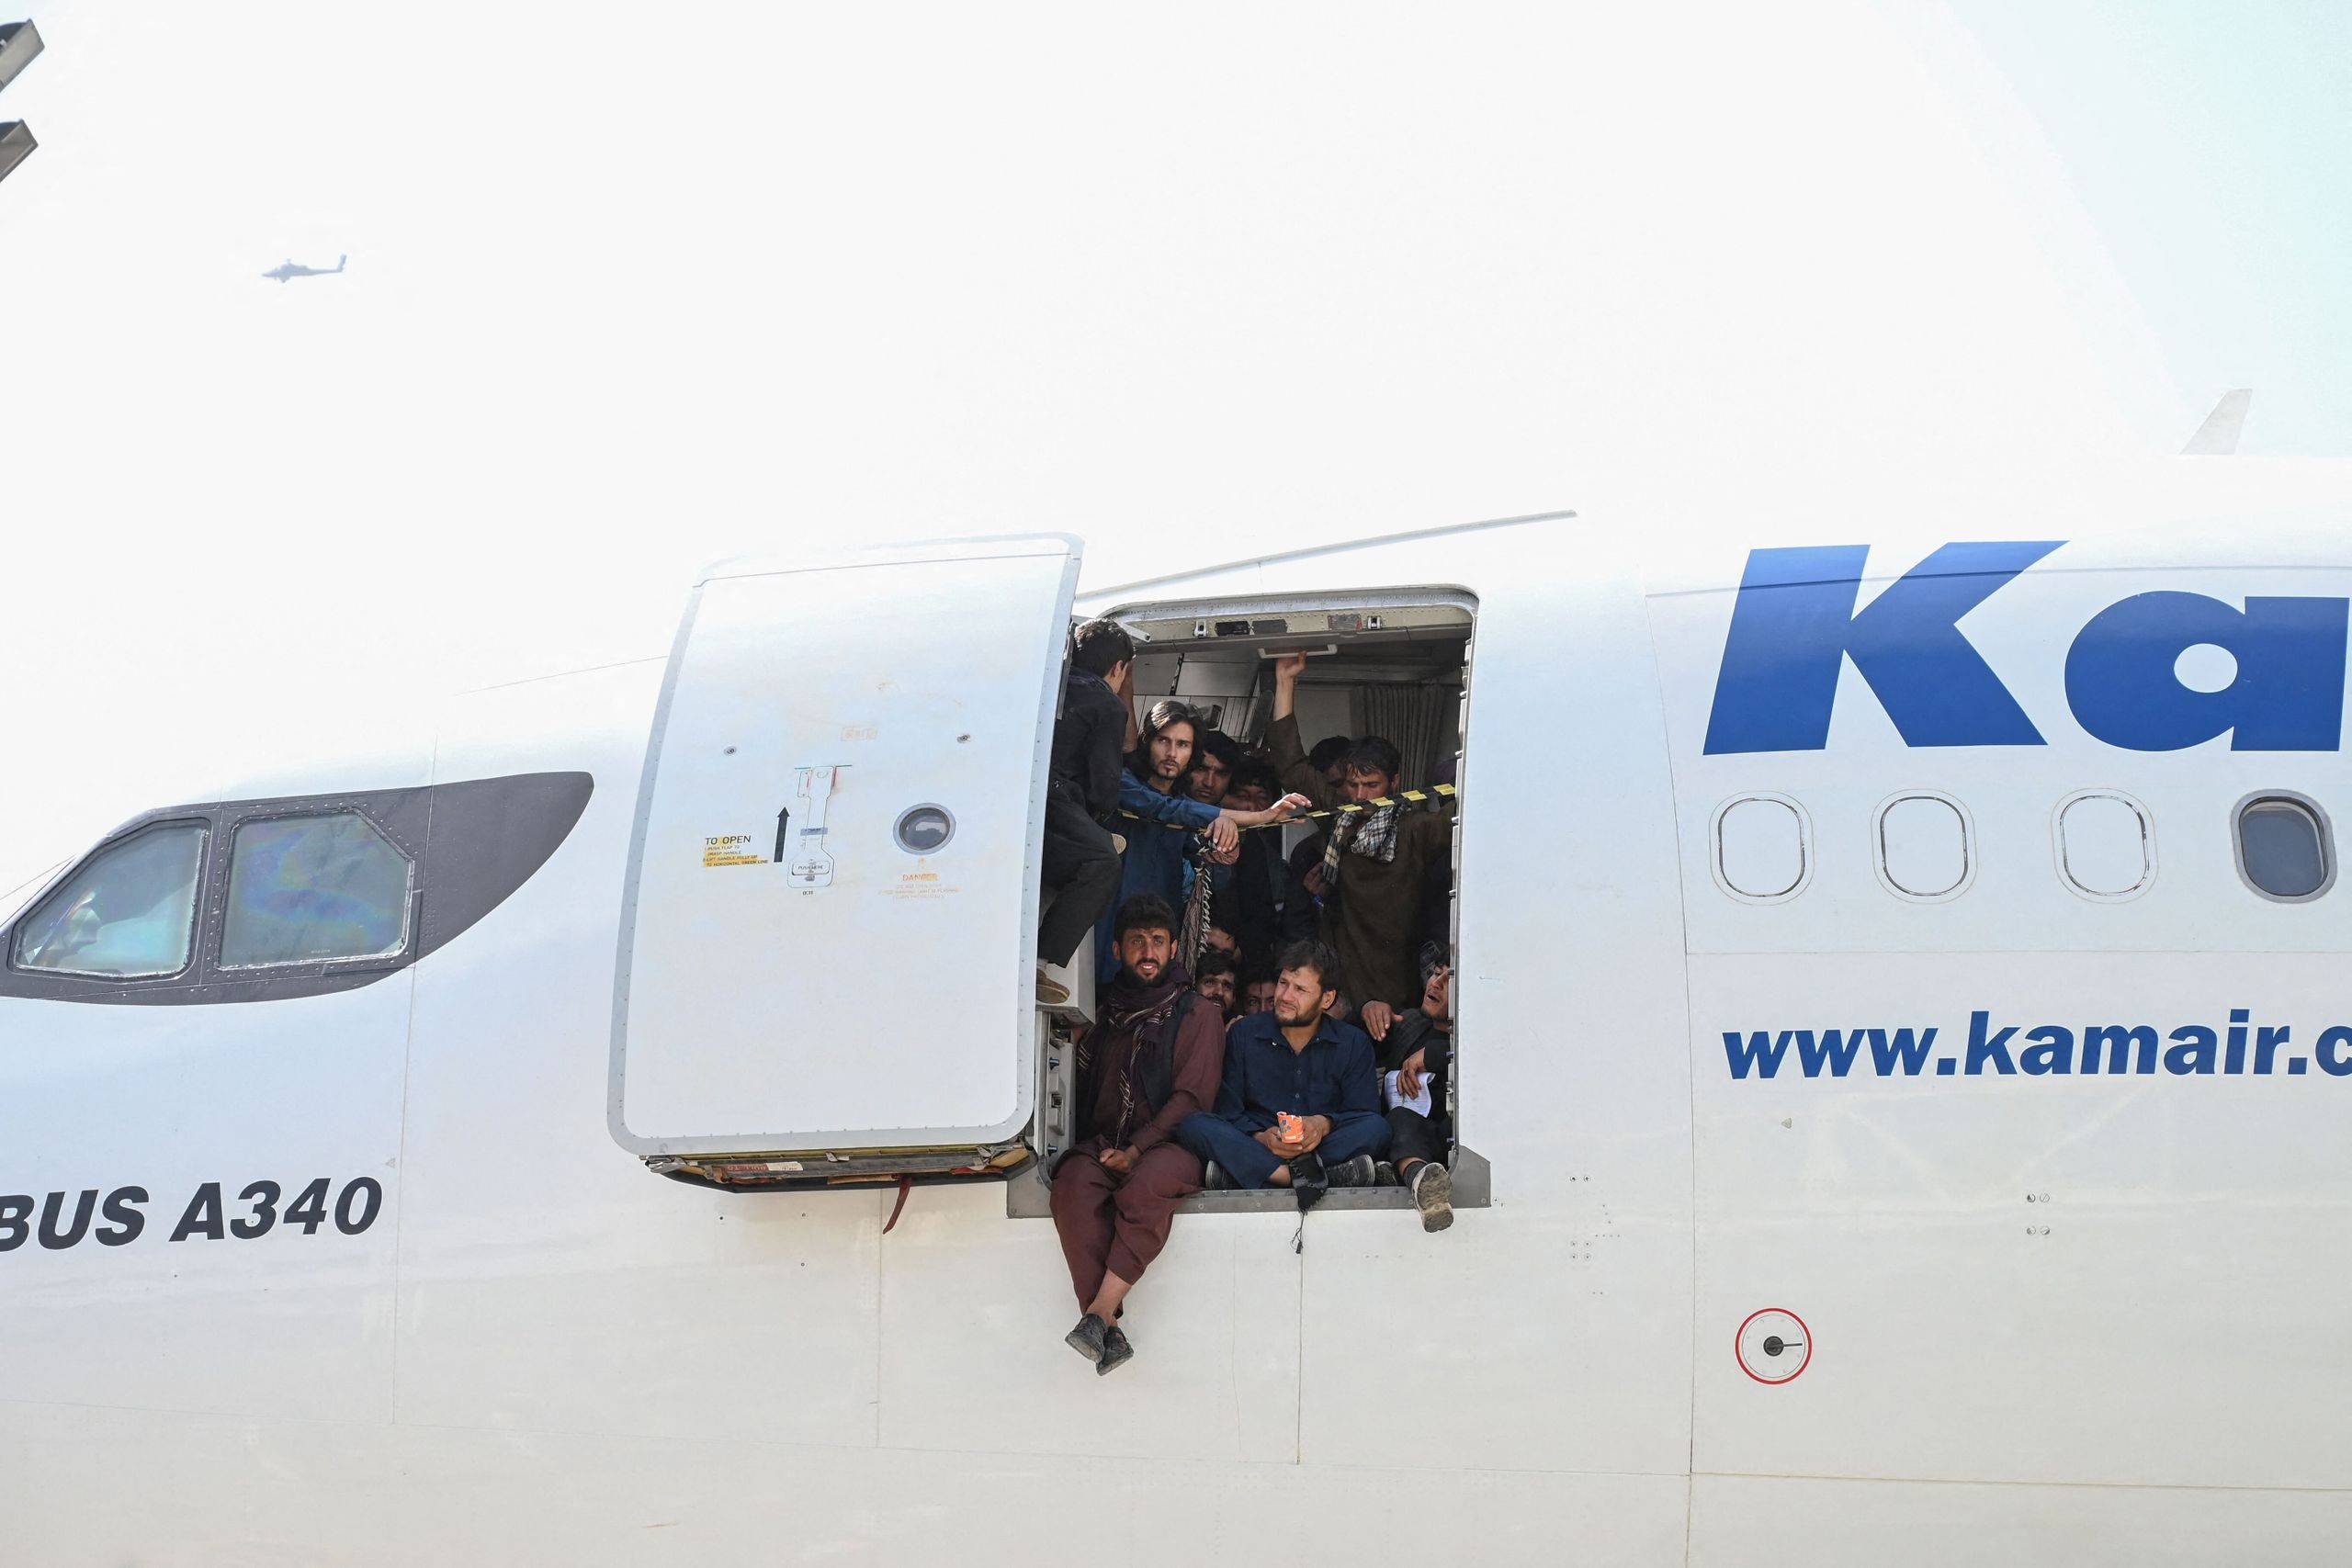 Video Shows Afghans Clinging To U.S. Military Plane As It Takes Off In Kabul